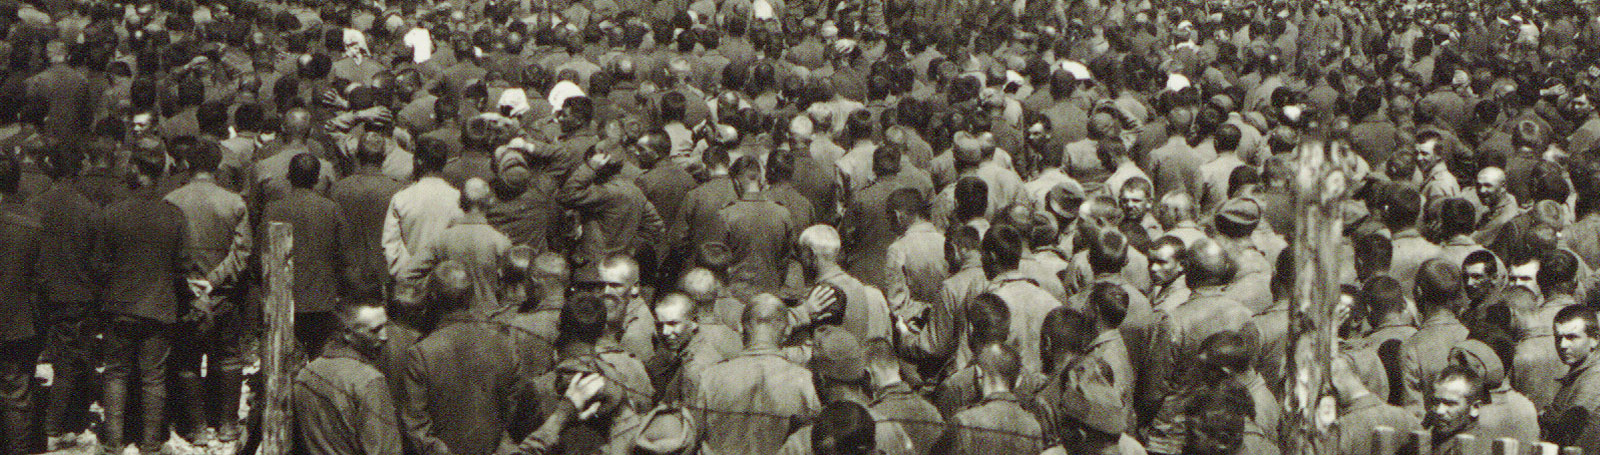 Photograph of crowd of Prisoners of War. Most have shaved heads.